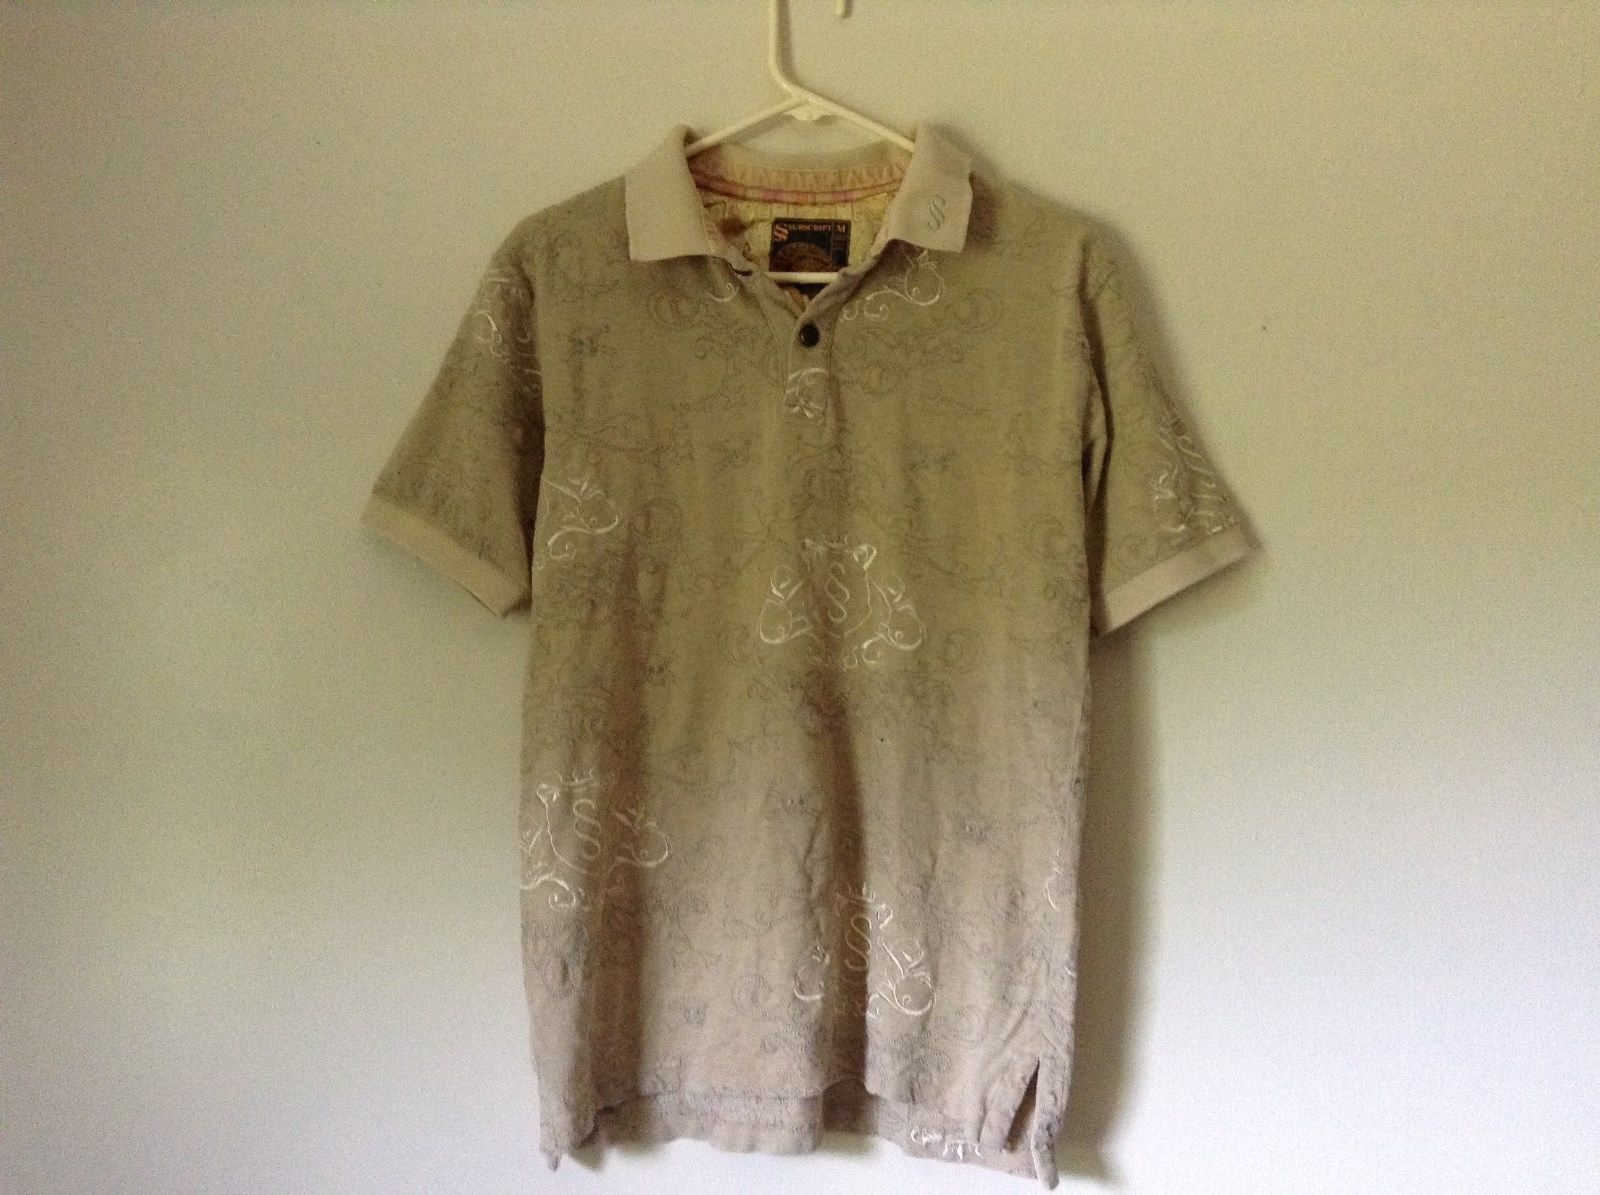 Subscript Polo Short Sleeve Size M Tan Light Brown Shirt Stitched on Design